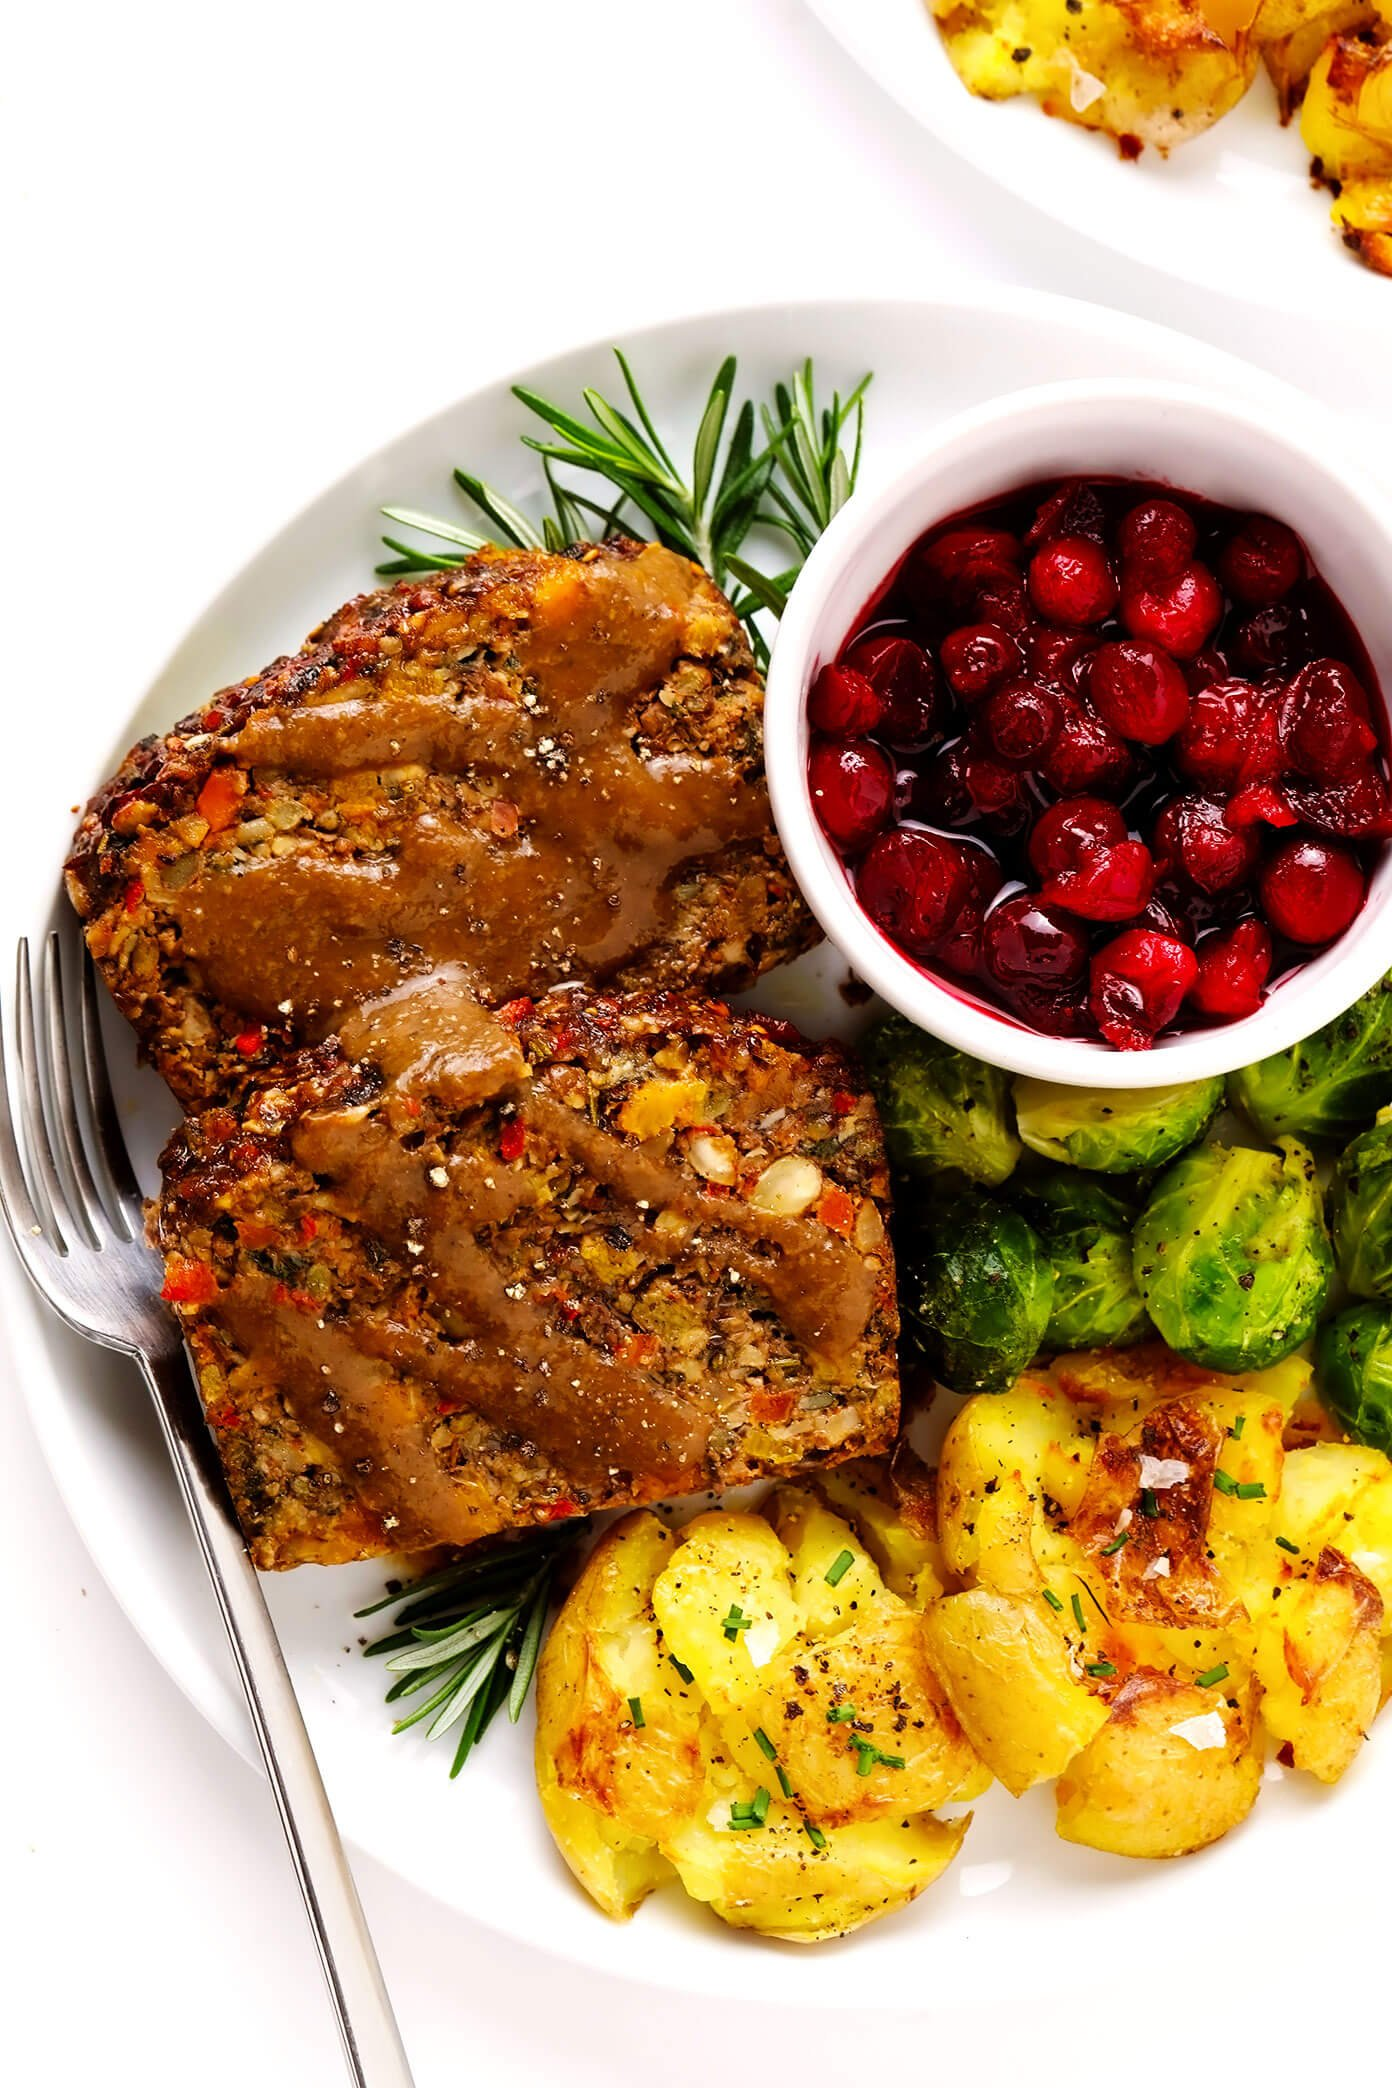 Nut Roast with Gravy, Smashed Potatoes, Roasted Brussels Sprouts and Cranberry Sauce